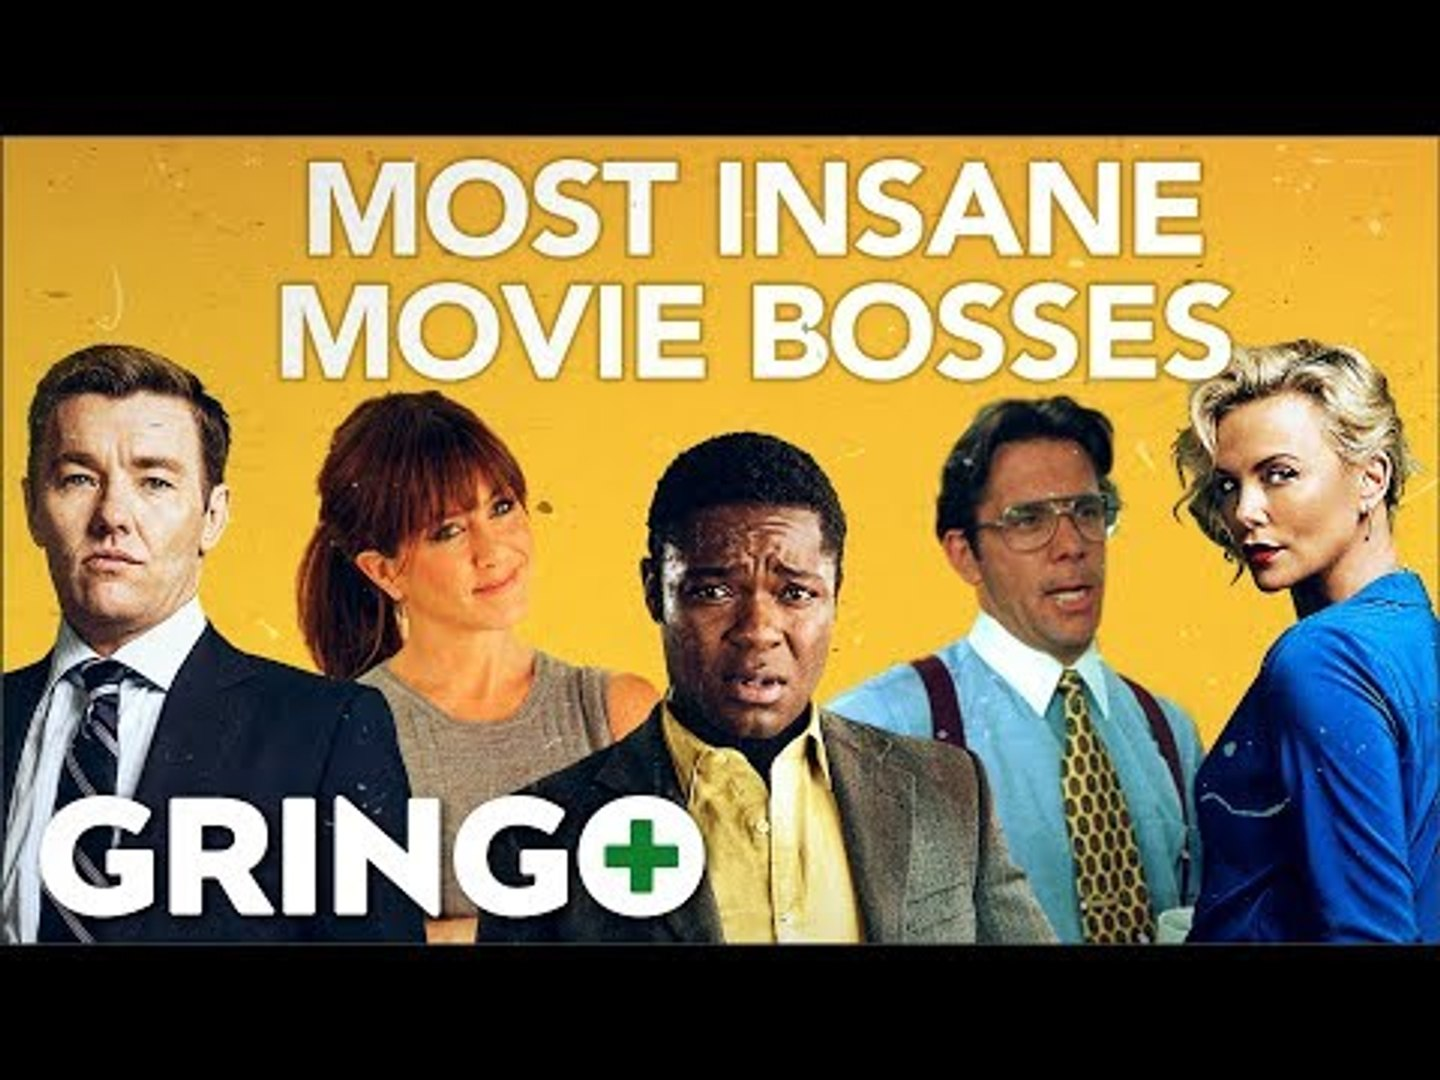 10 Most Insane Movie Bosses